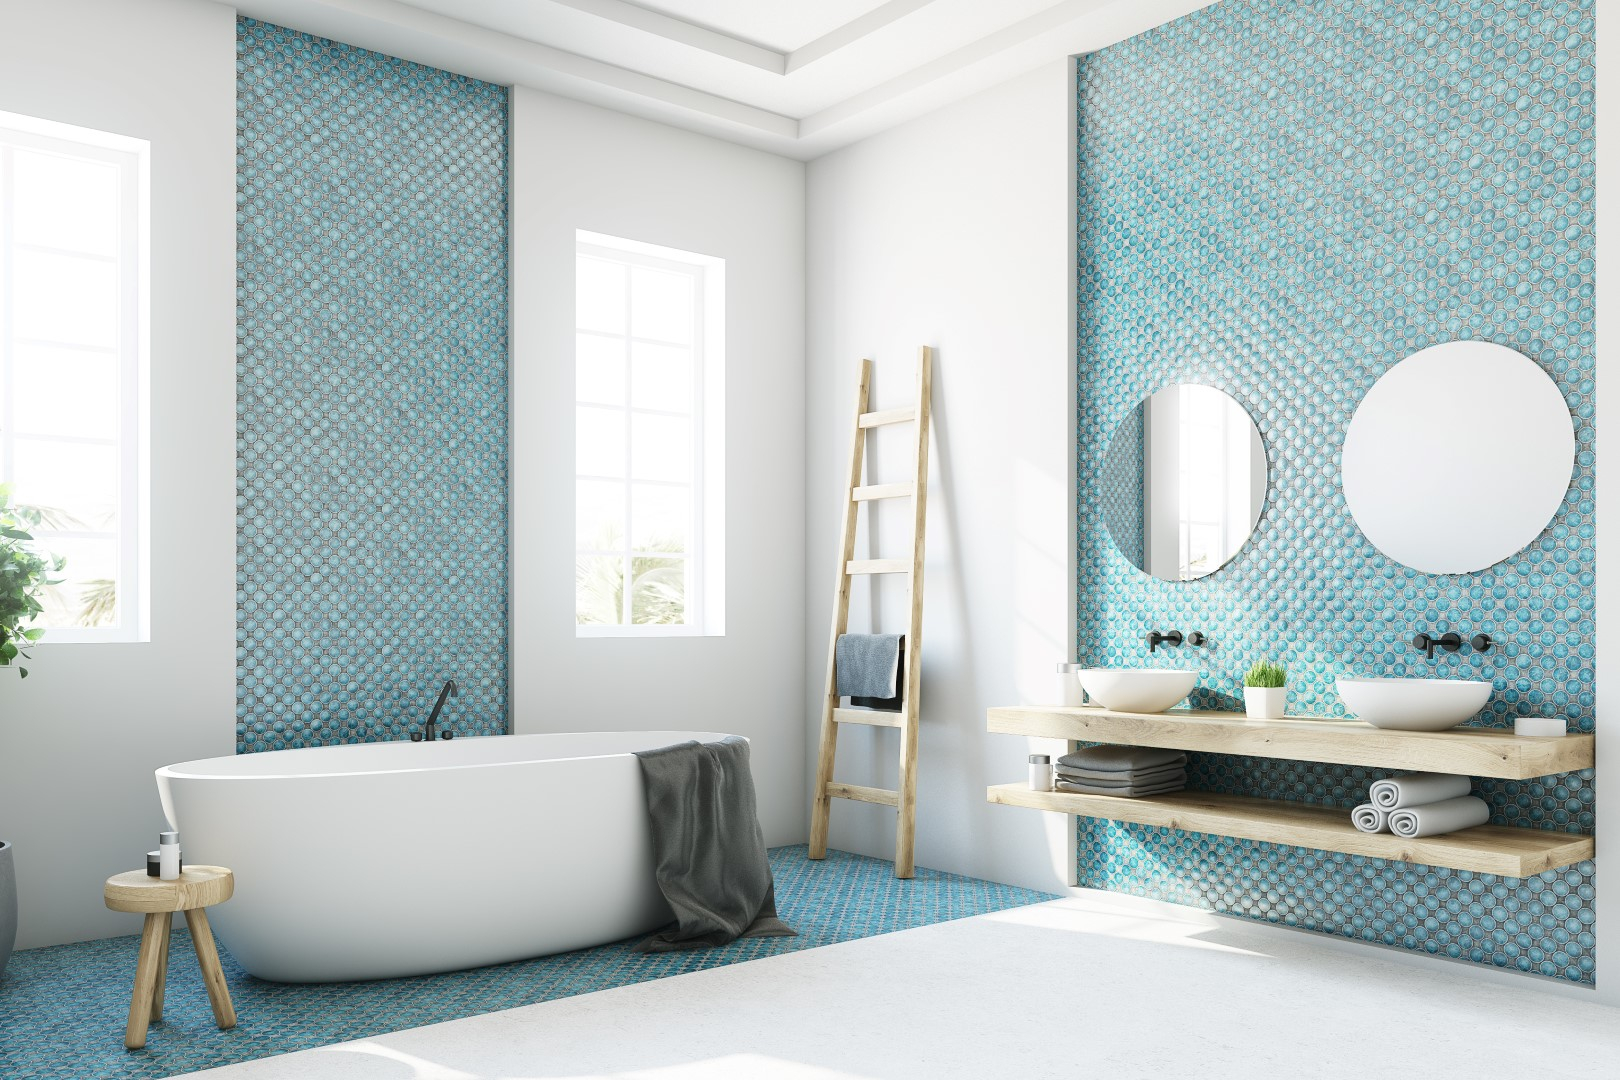 The Best Modern Bathroom Tile Trends Our Definitive Guide with proportions 1620 X 1080